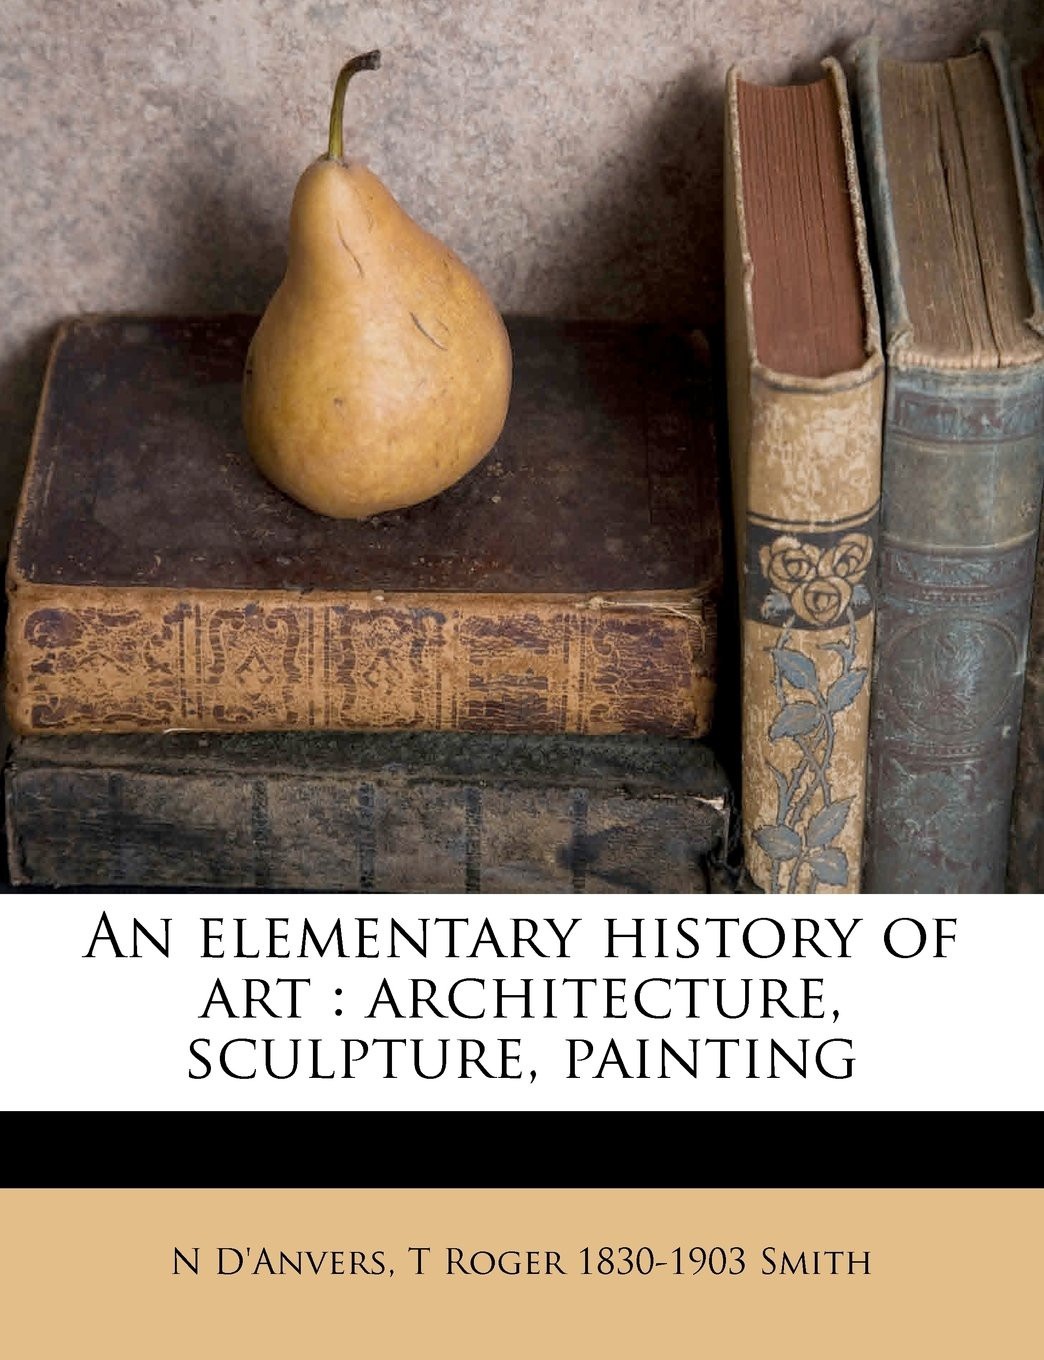 An elementary history of art: architecture, sculpture, painting PDF